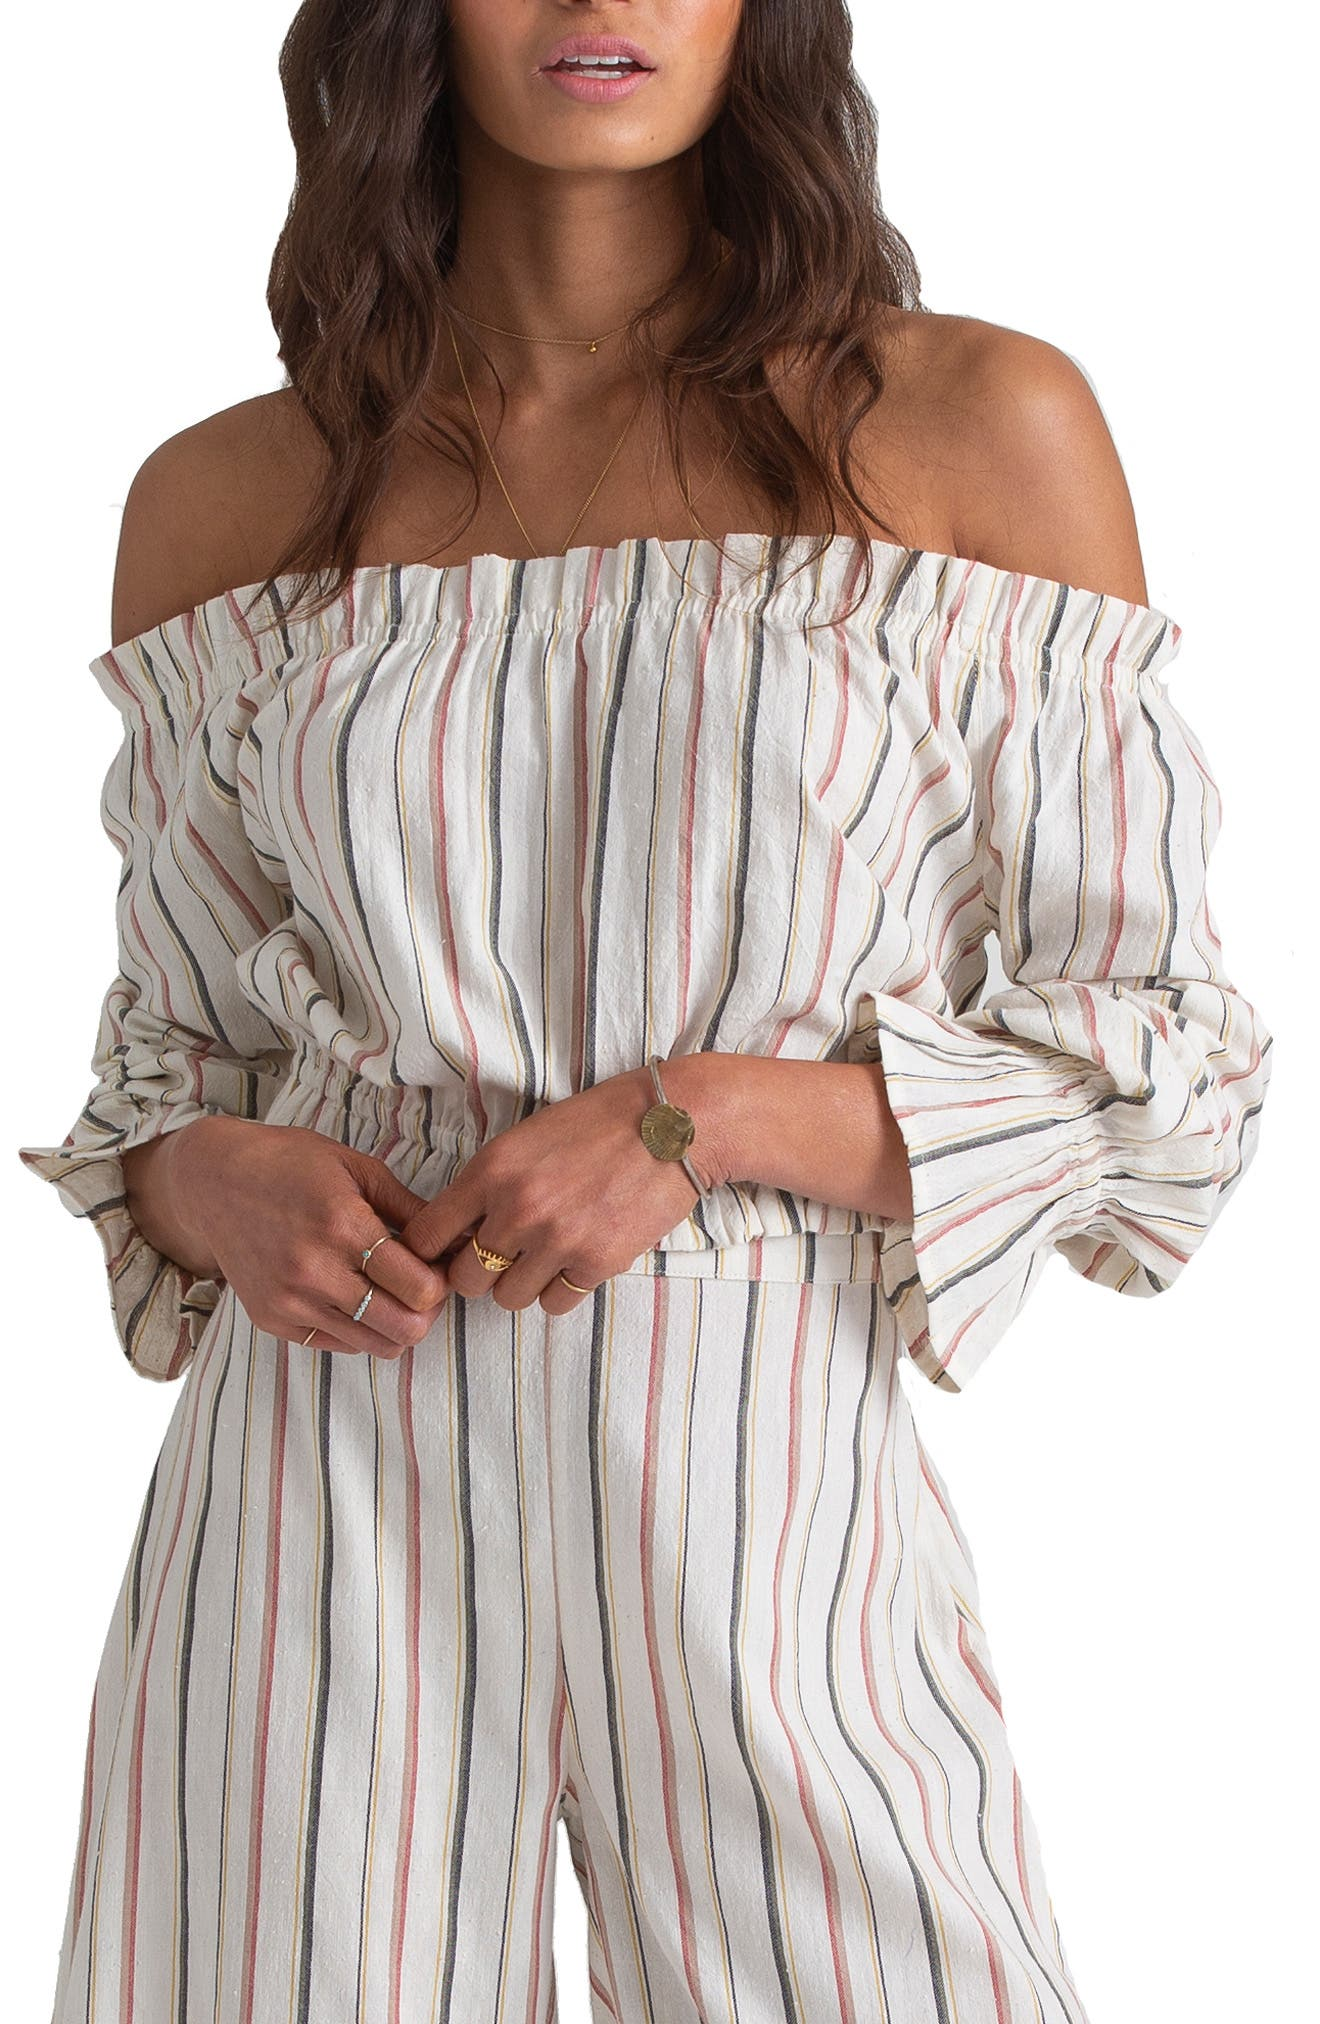 X Sincerely Jules Tulum Weathers Off The Shoulder Crop Top by Billabong